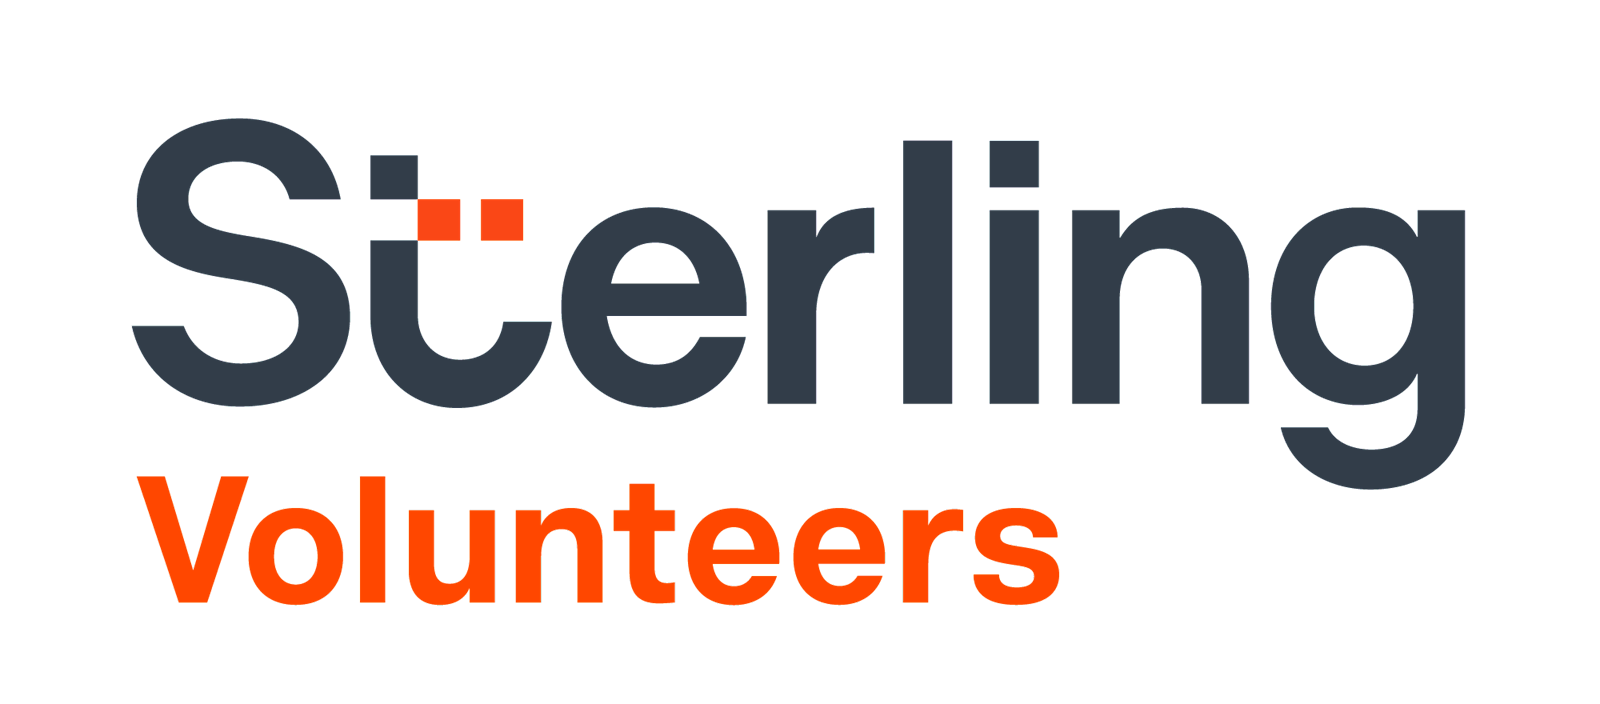 Verified Volunteers Logo